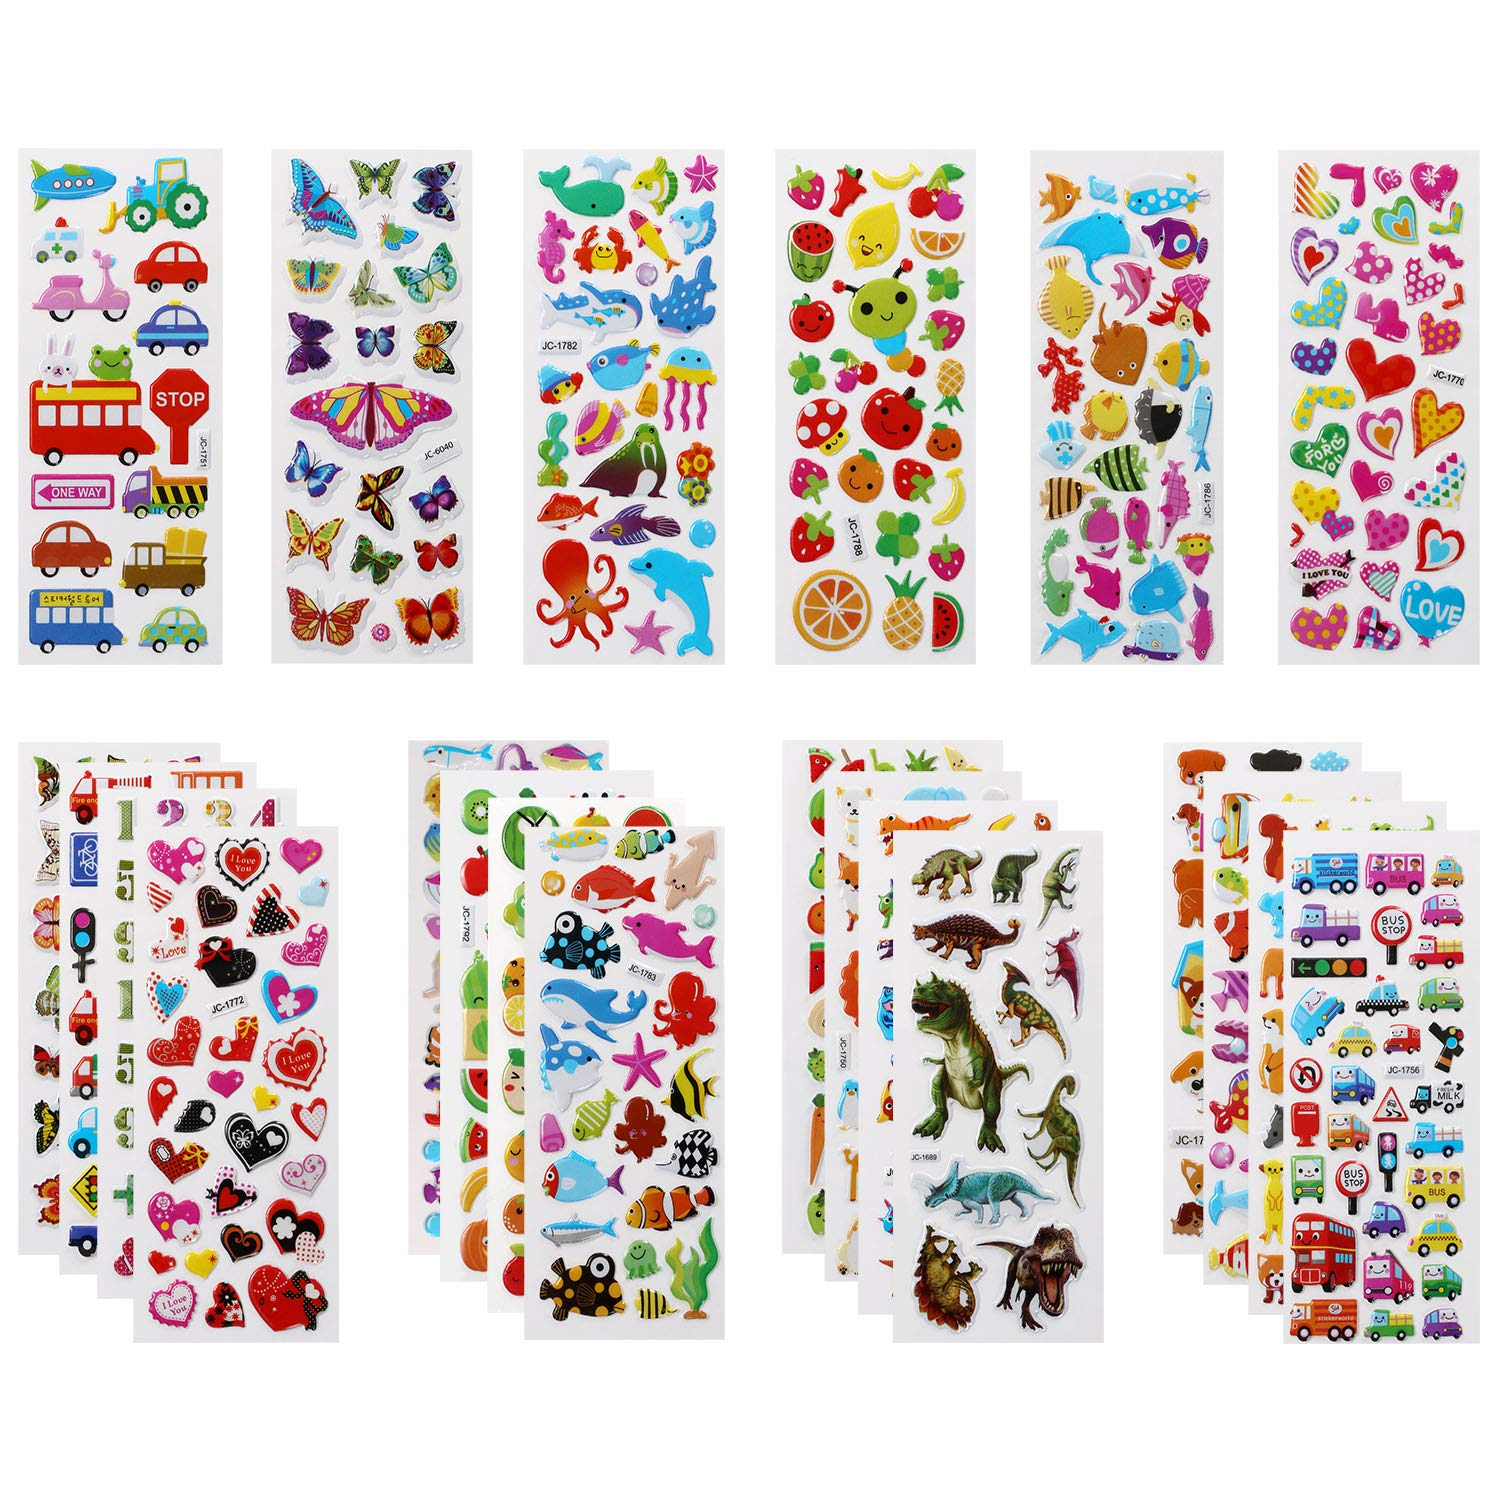 22 Feuilles Autocollants de Vari/ét/és pour R/écompenser Scrapbooking Camions etc. Num/éros Fruits Dinosaures VLCOO Autocollants 3D pour Enfants 500+ Stickers 3D en Relief y Compris Animaux